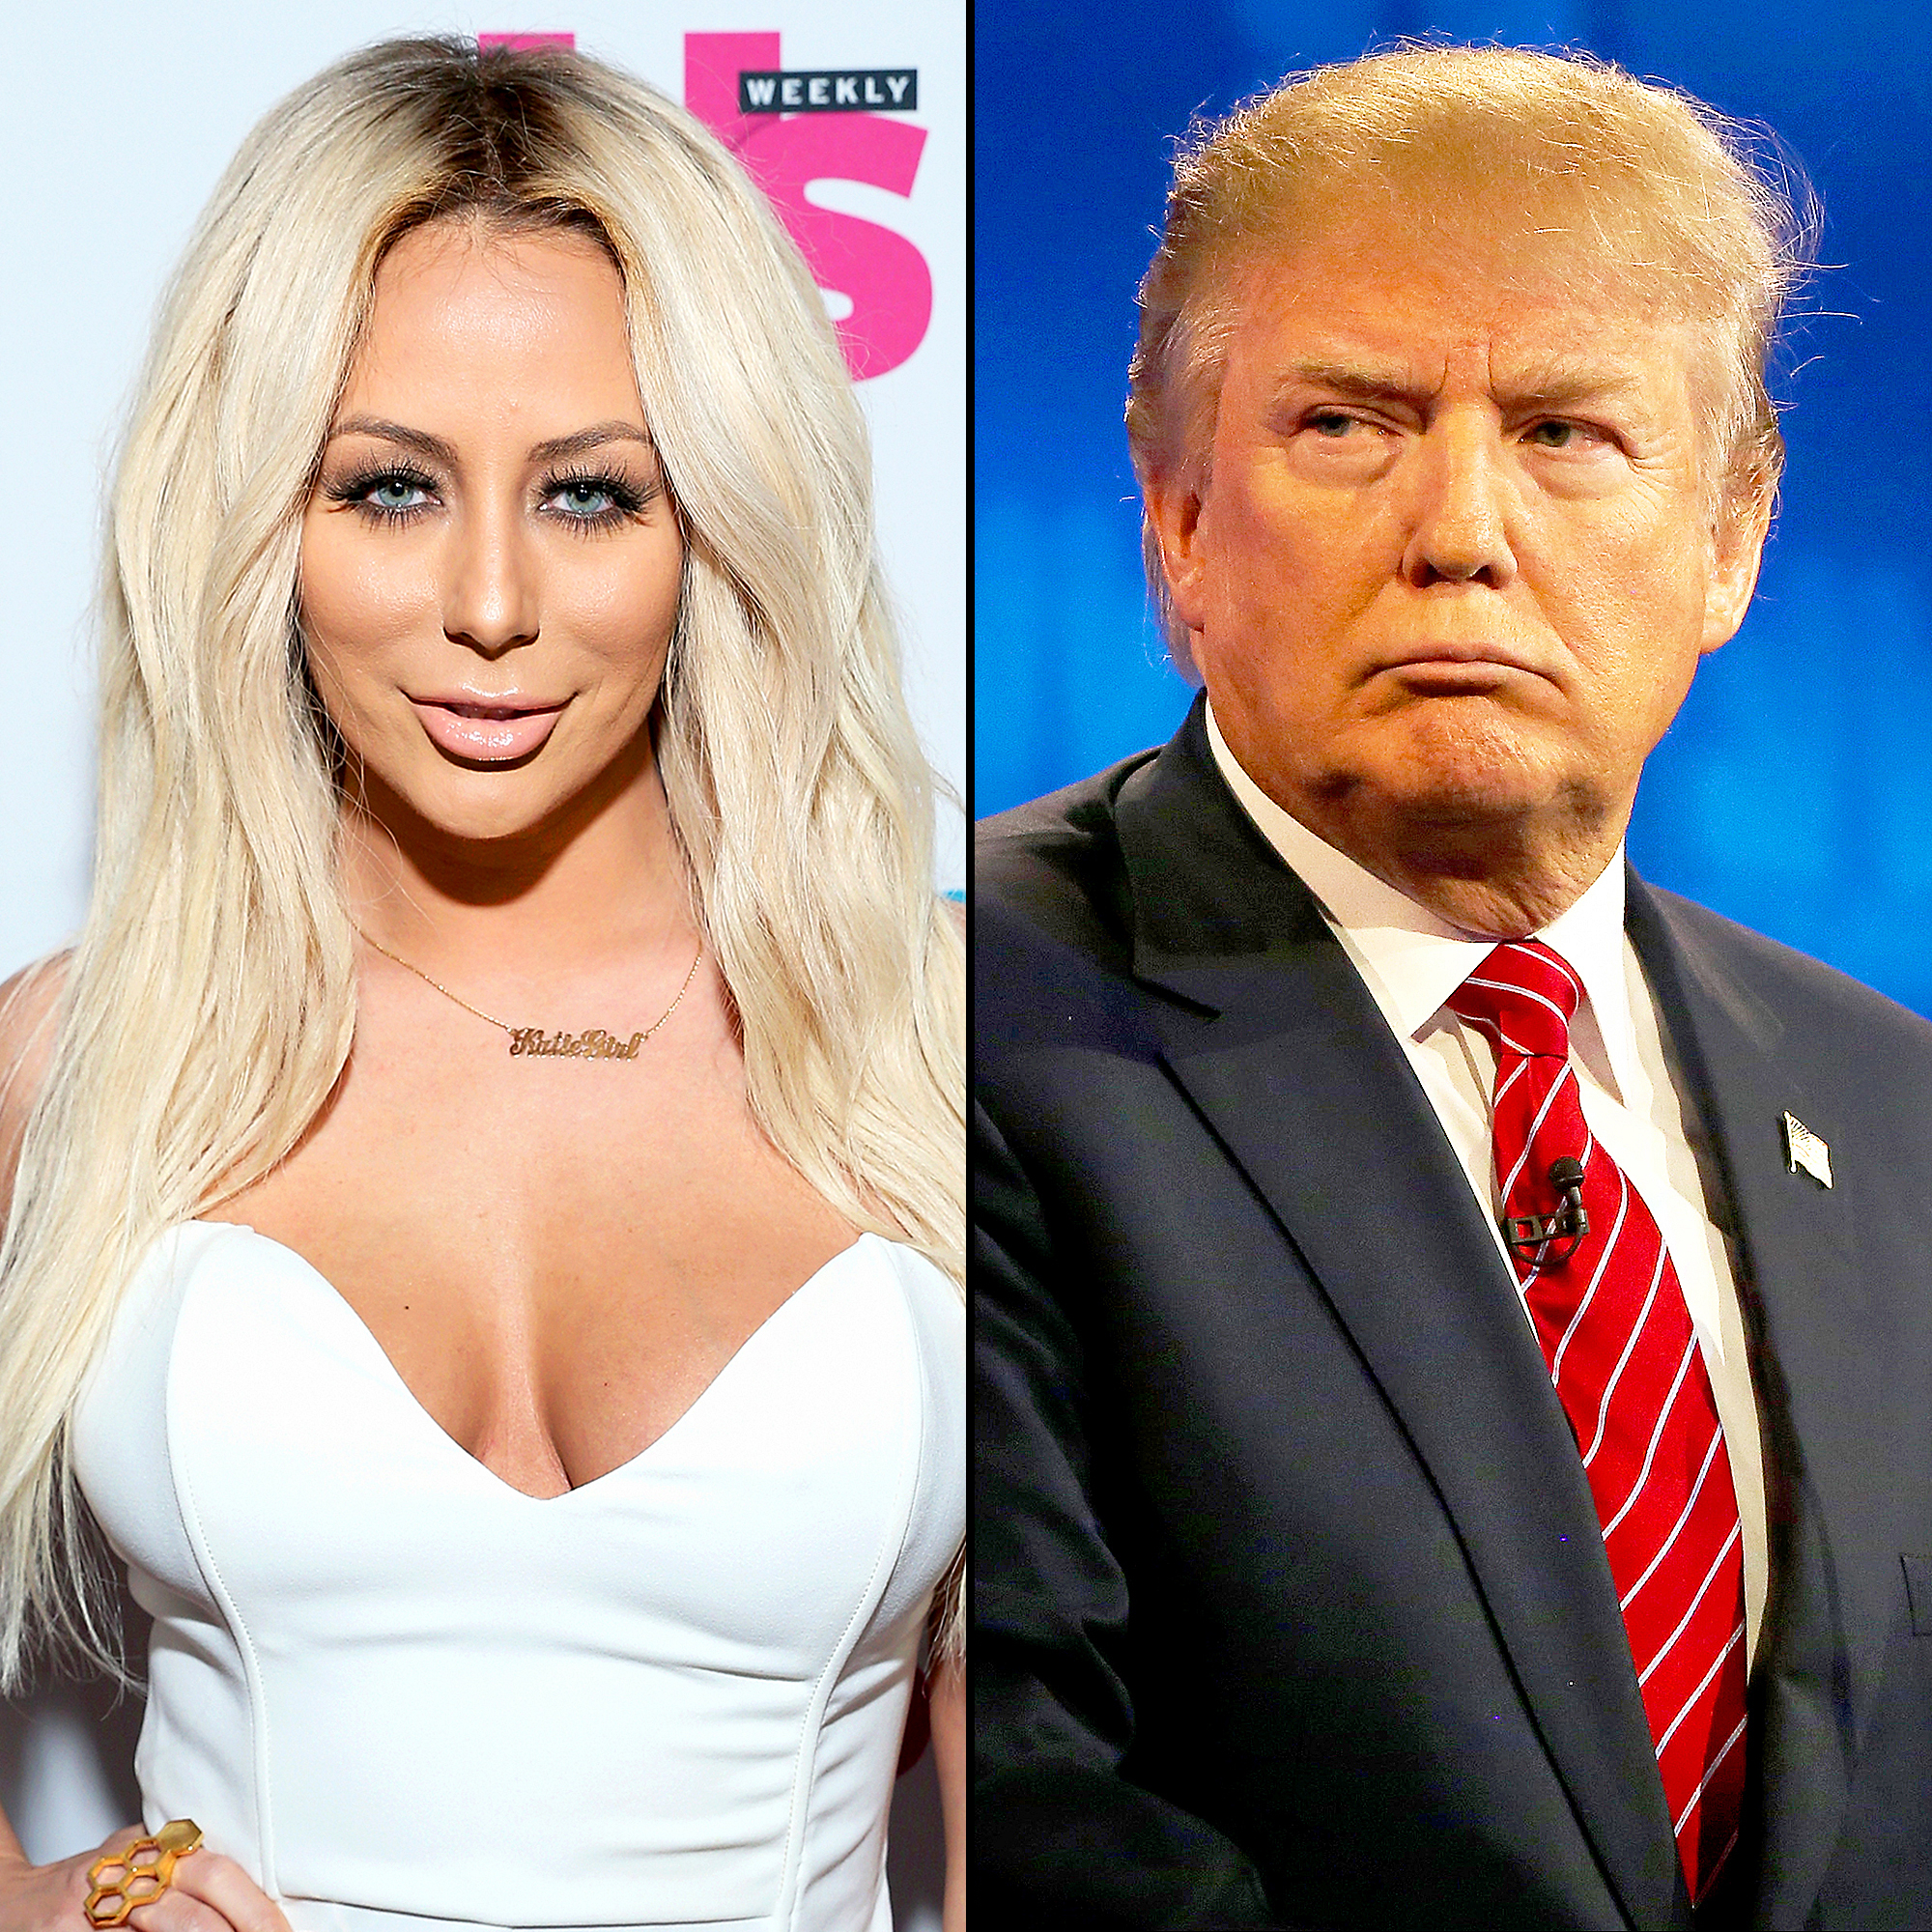 Aubrey O Day Shared Cryptic Tweet Before Donald Trump Won Election Aubrey O Day and Donald Trump